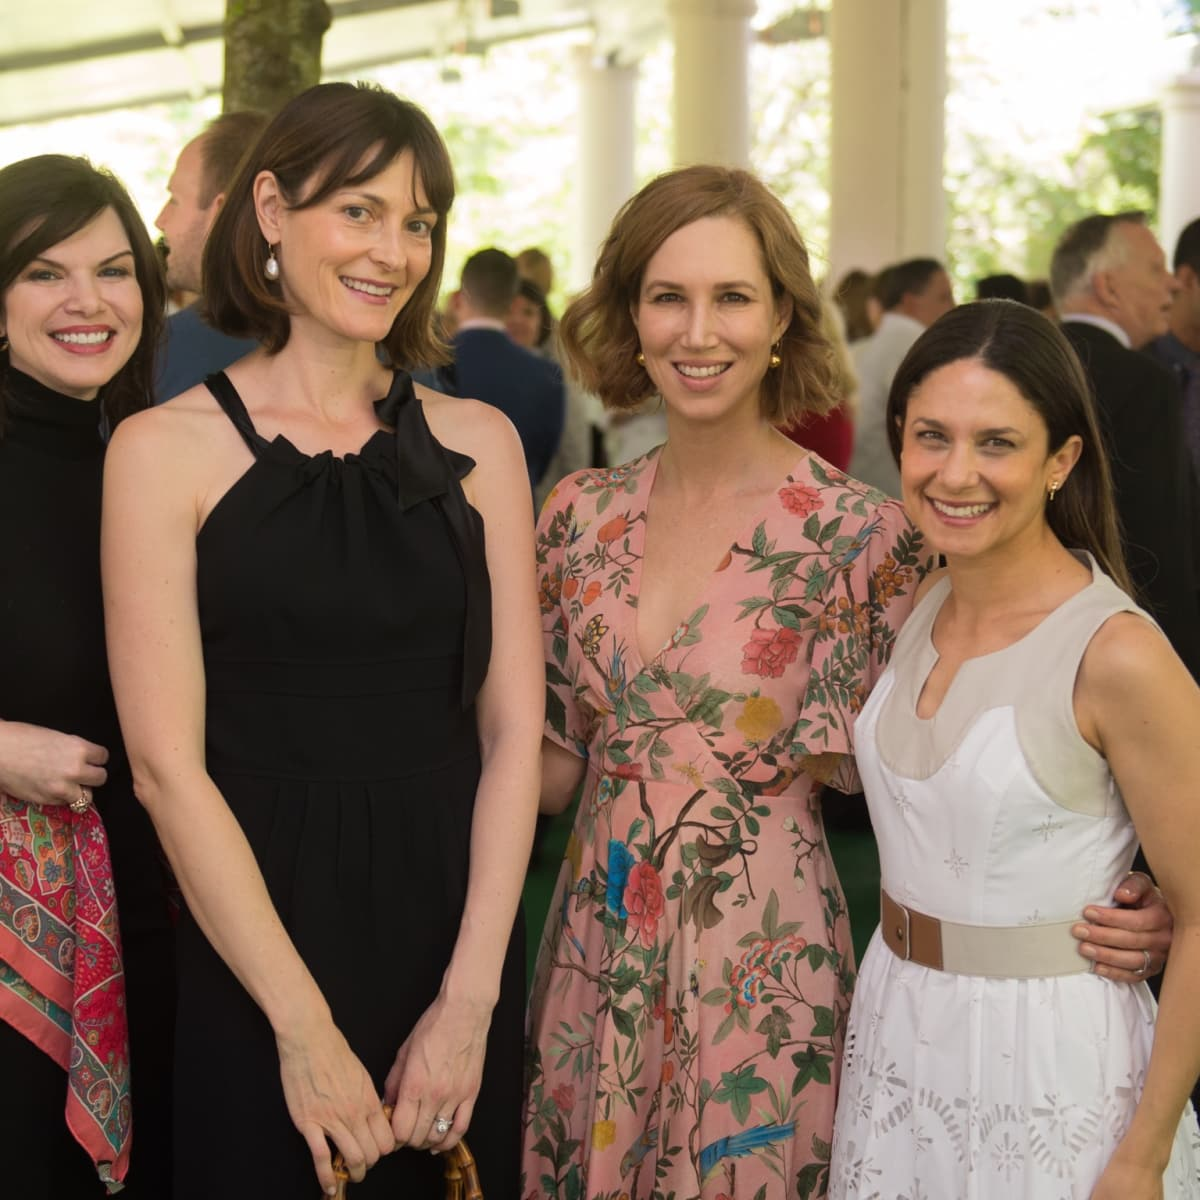 Mary Olga Lovett; Vicky Wight; Carolyn Doros; Karen Farber at Bayou Bend Oscar de la Renta